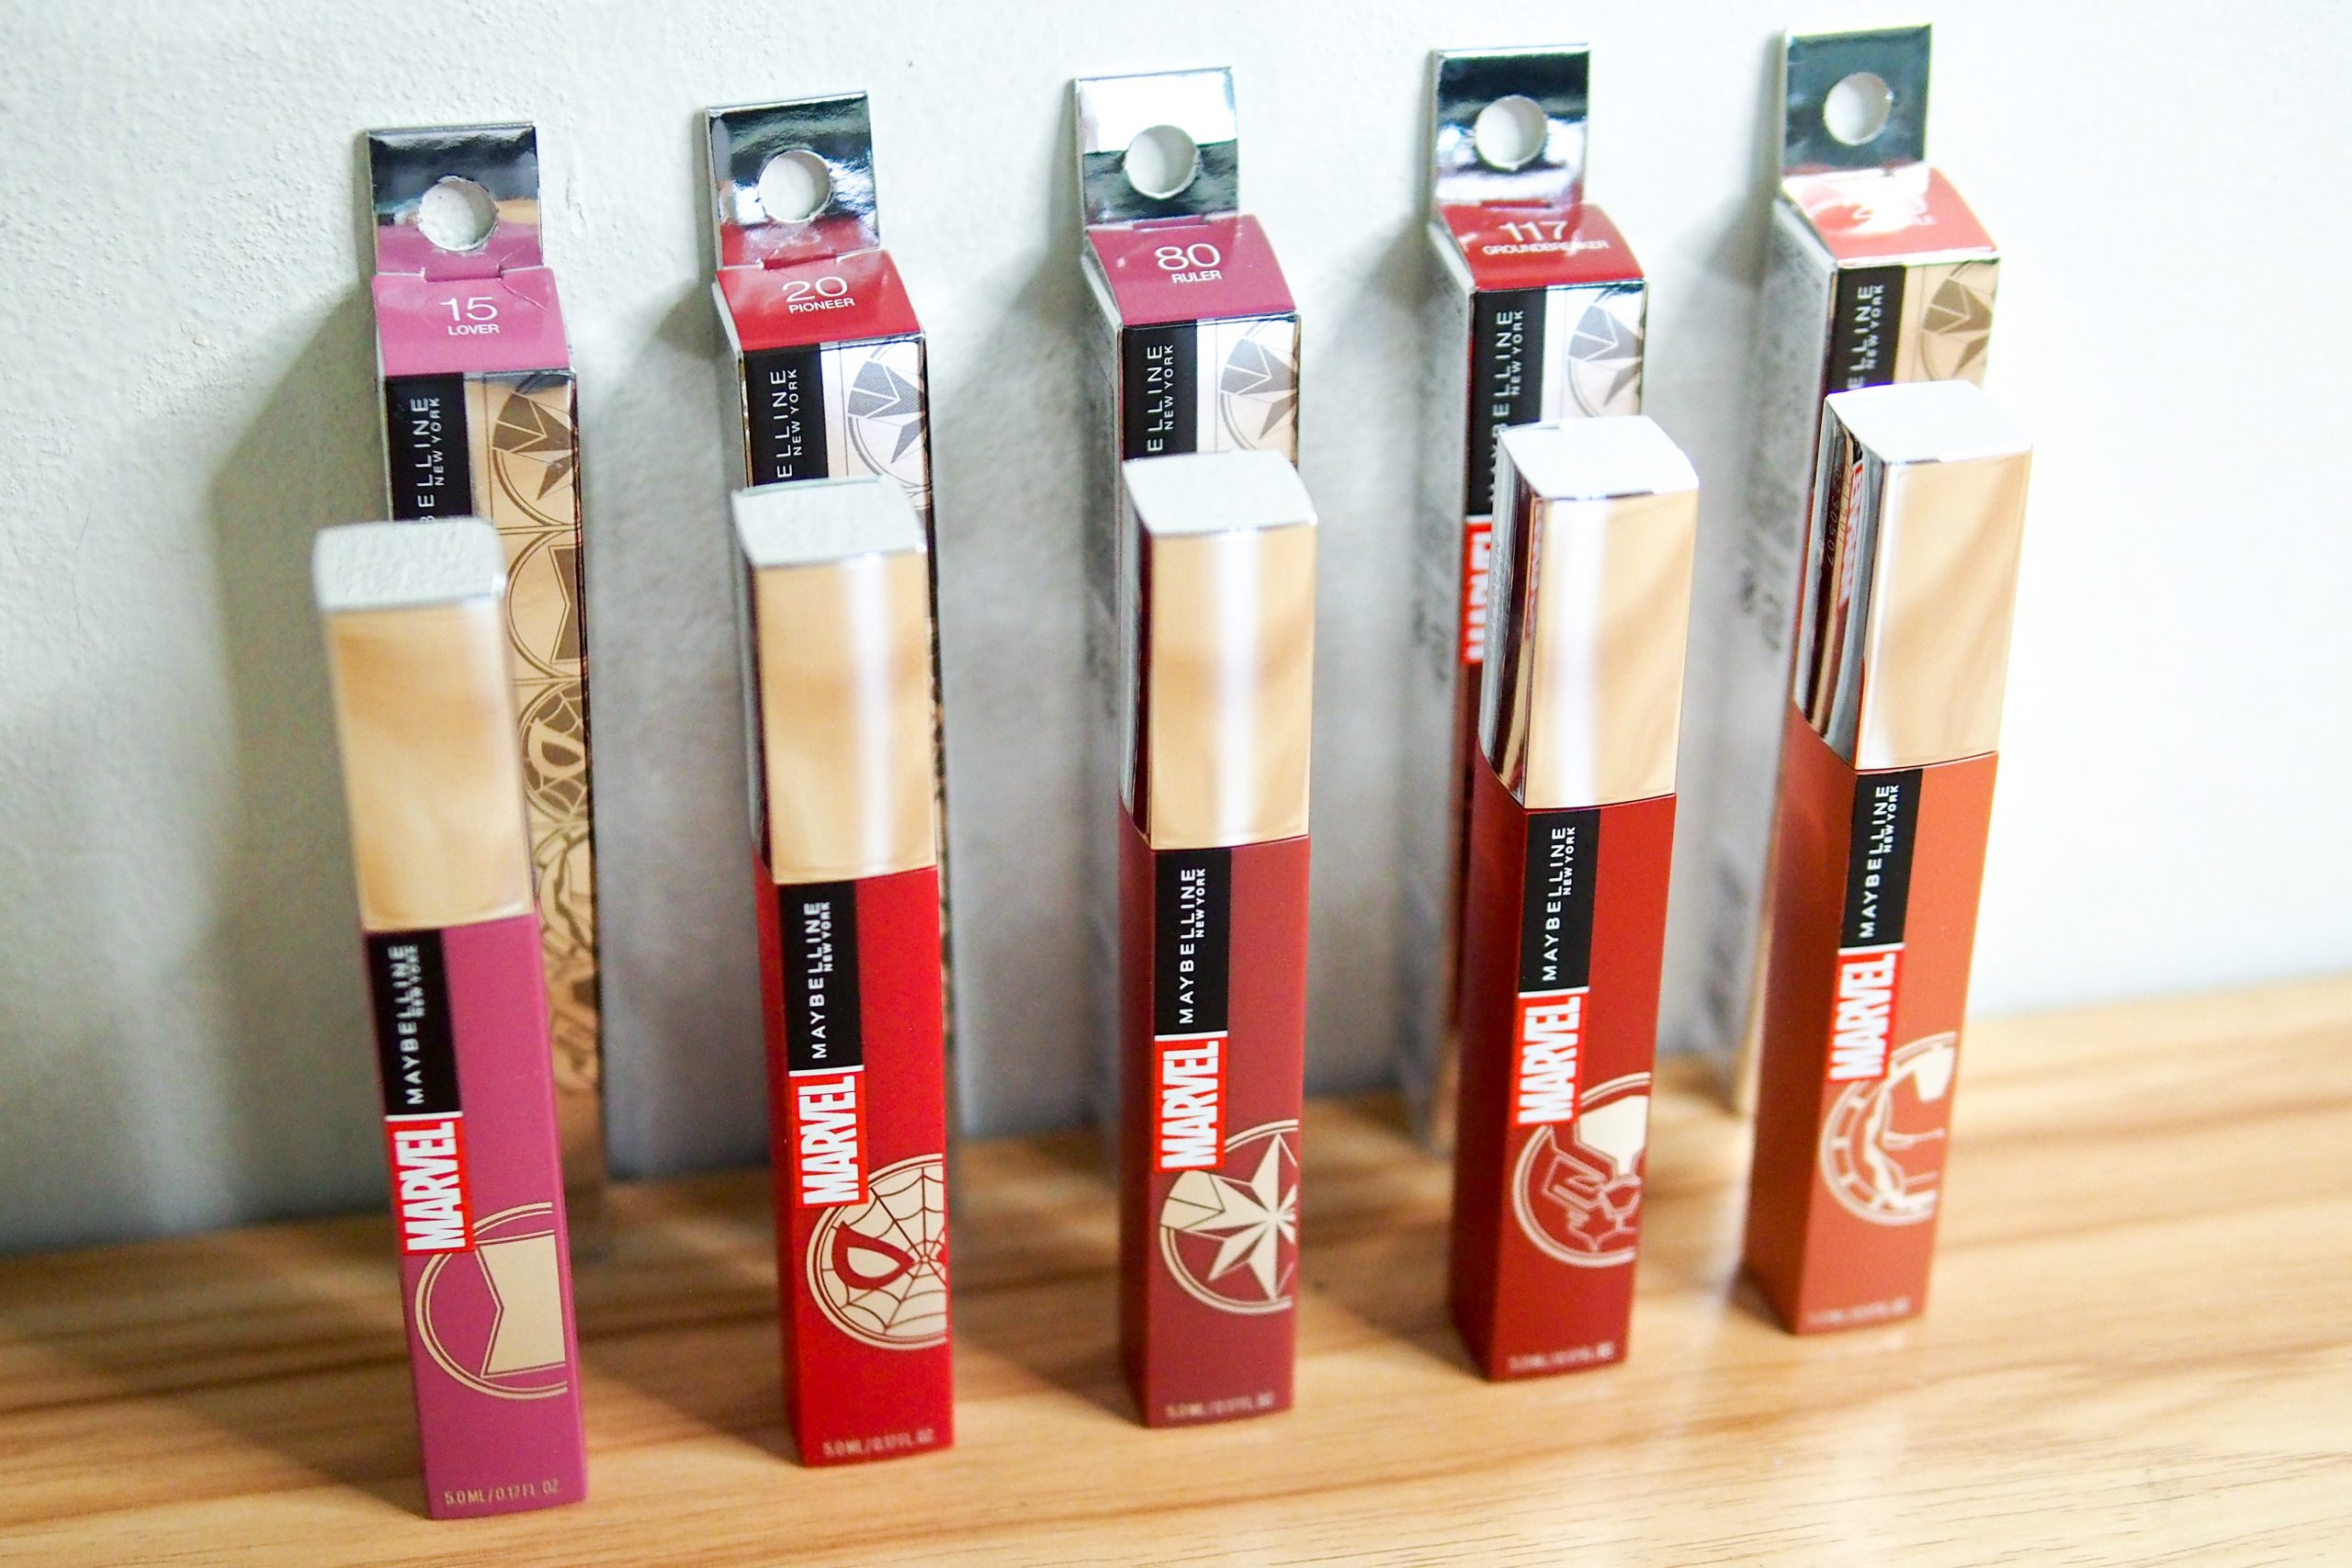 Shopee Brand Day Presents the Maybelline Marvel Collection